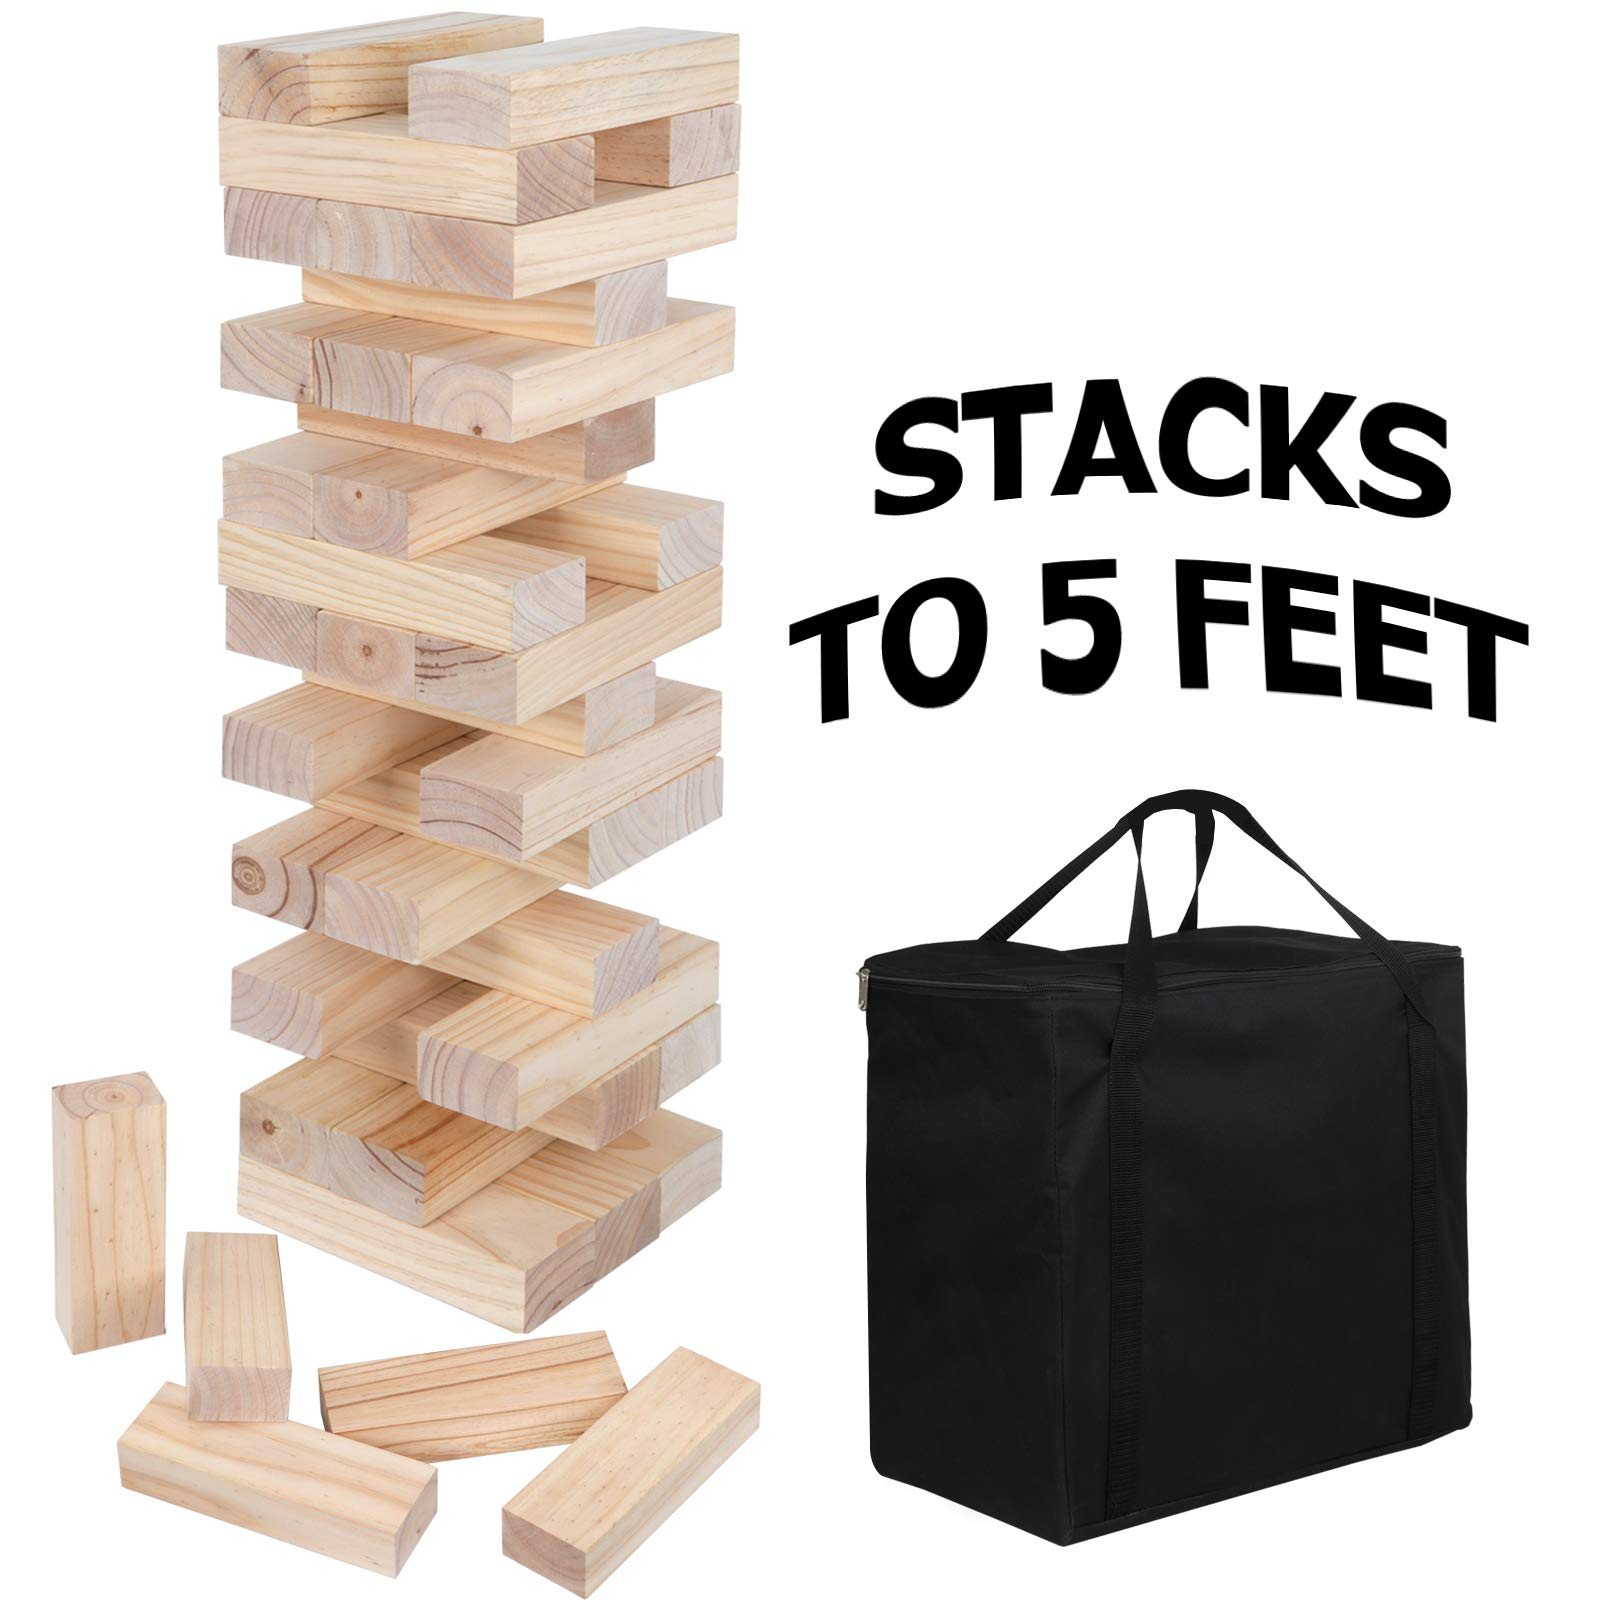 ZENY 54 Pieces Giant Tumbling Timbers Toppling Tower Wood Block Stacking Games Building Blocks Yard Game for Kids,Adults,Build to 5 Feet by ZENY